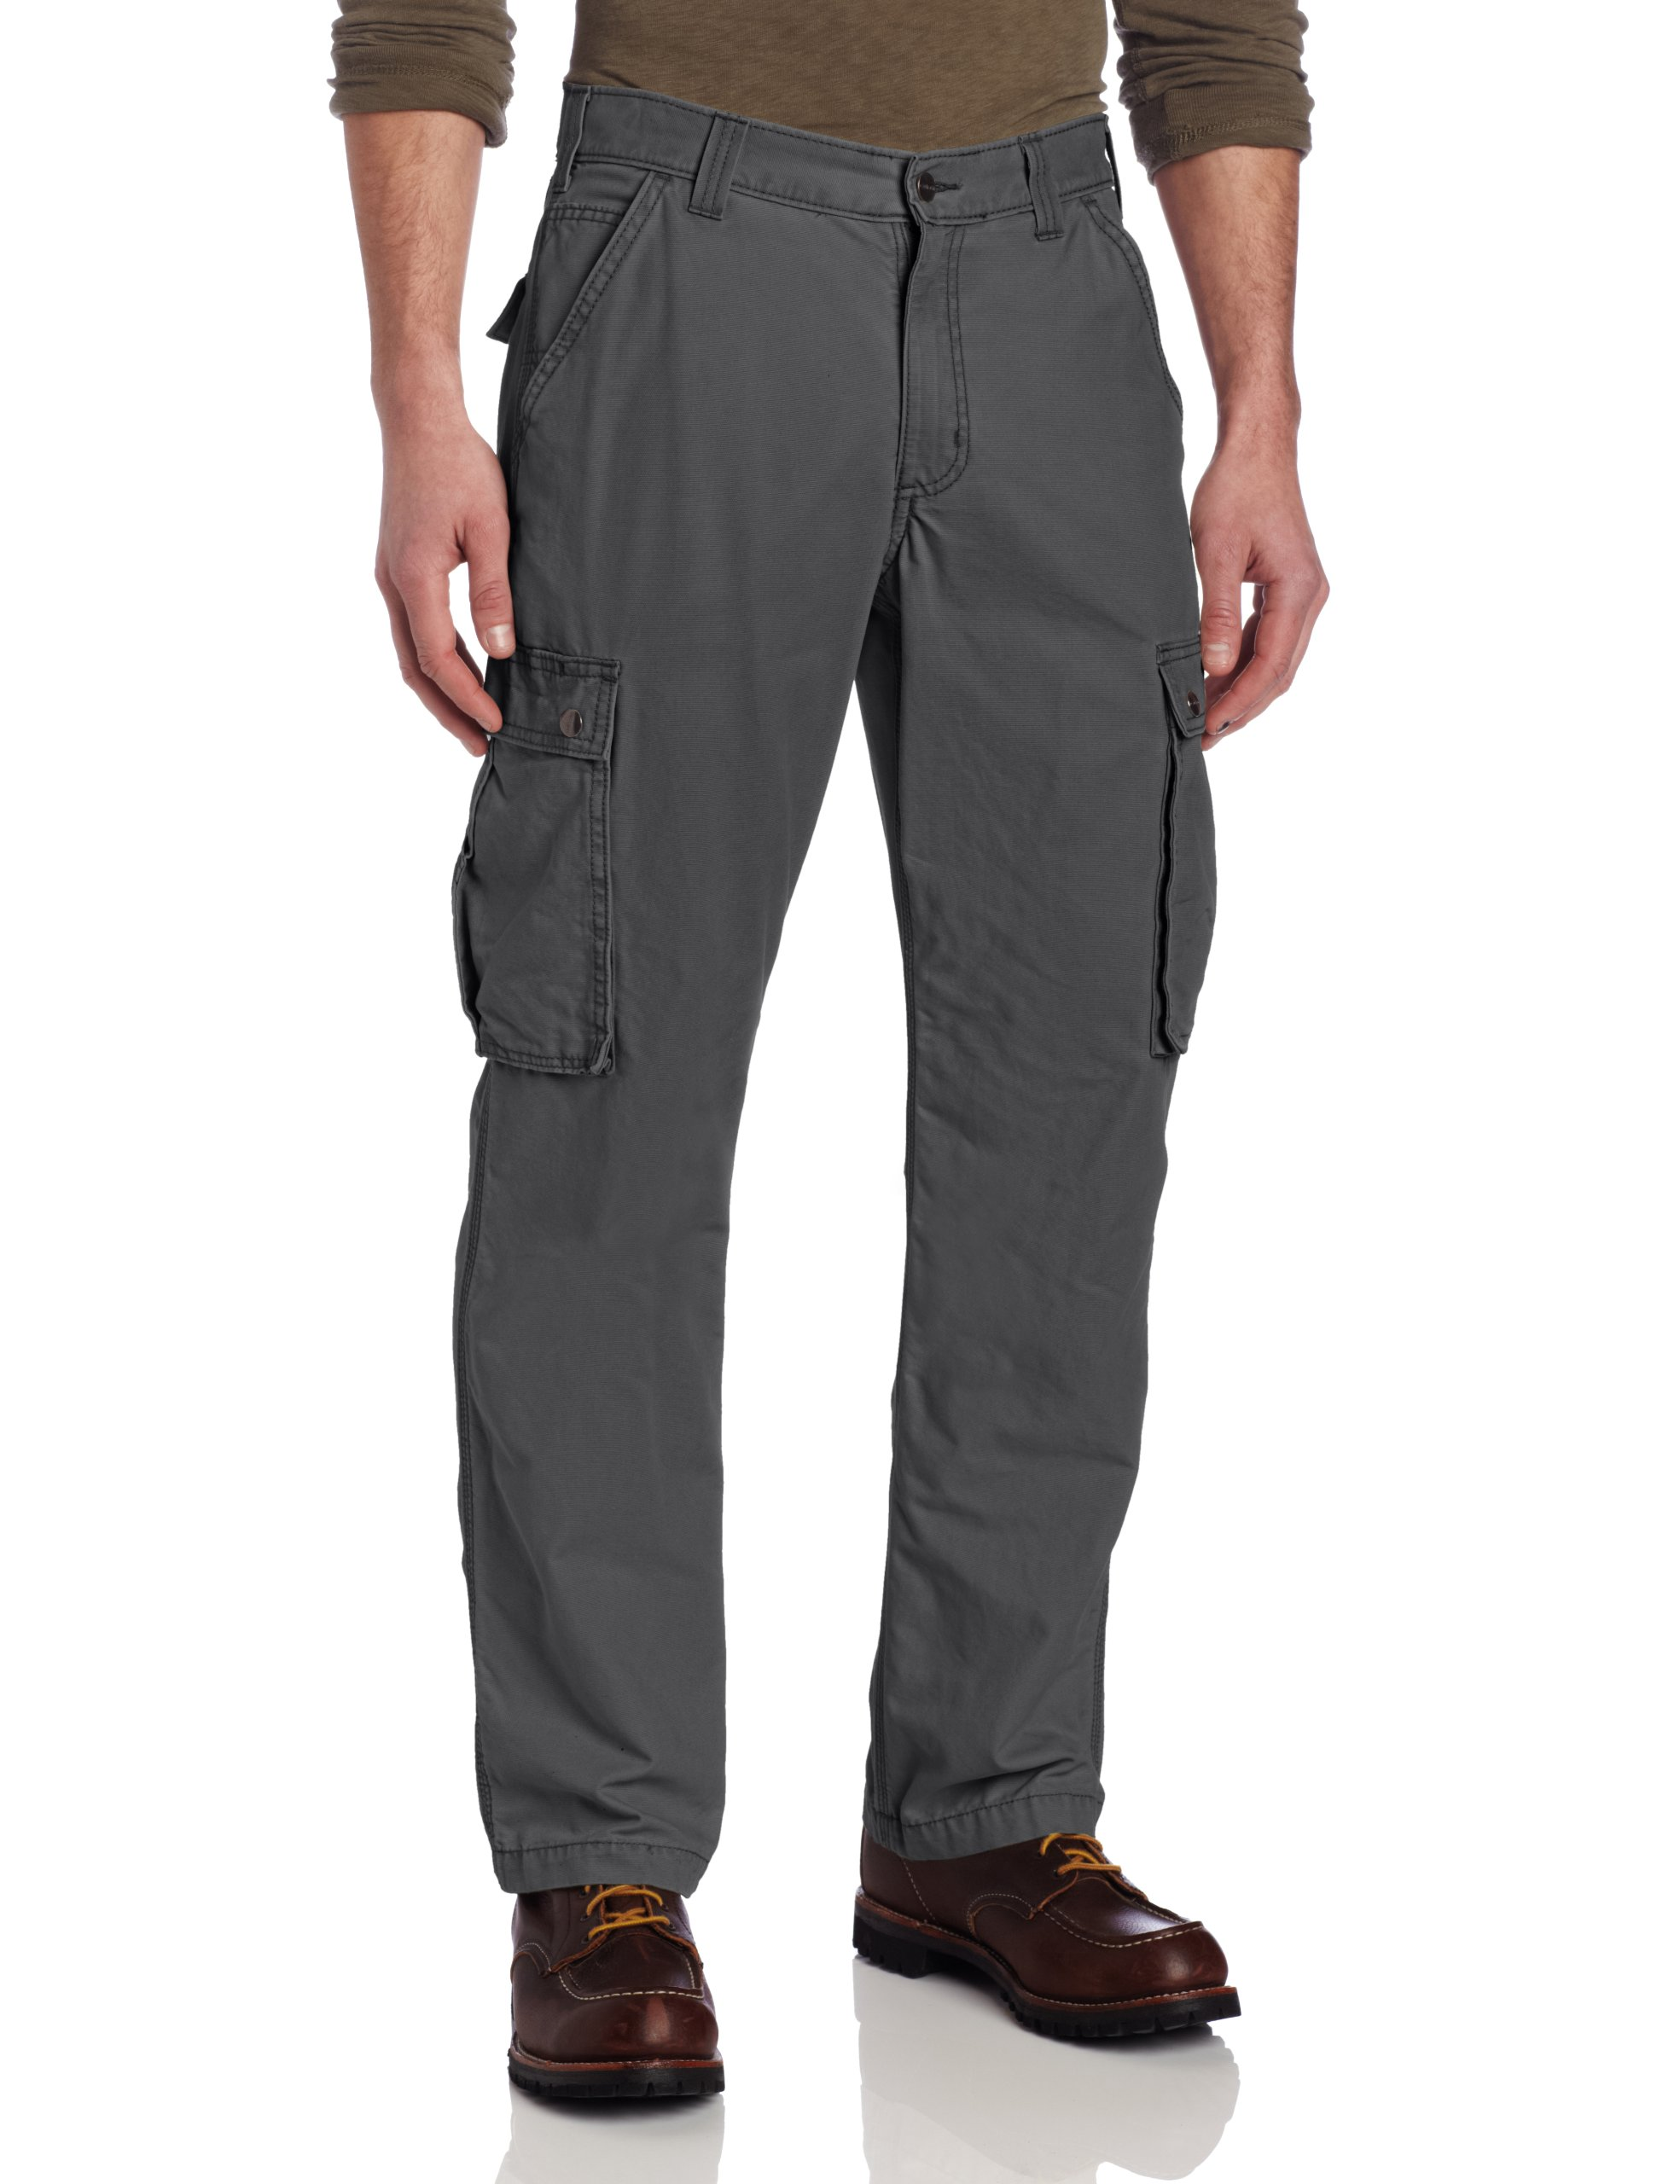 Carhartt Men's Rugged Cargo Pant Relaxed Fit,Gravel,36W x 32L